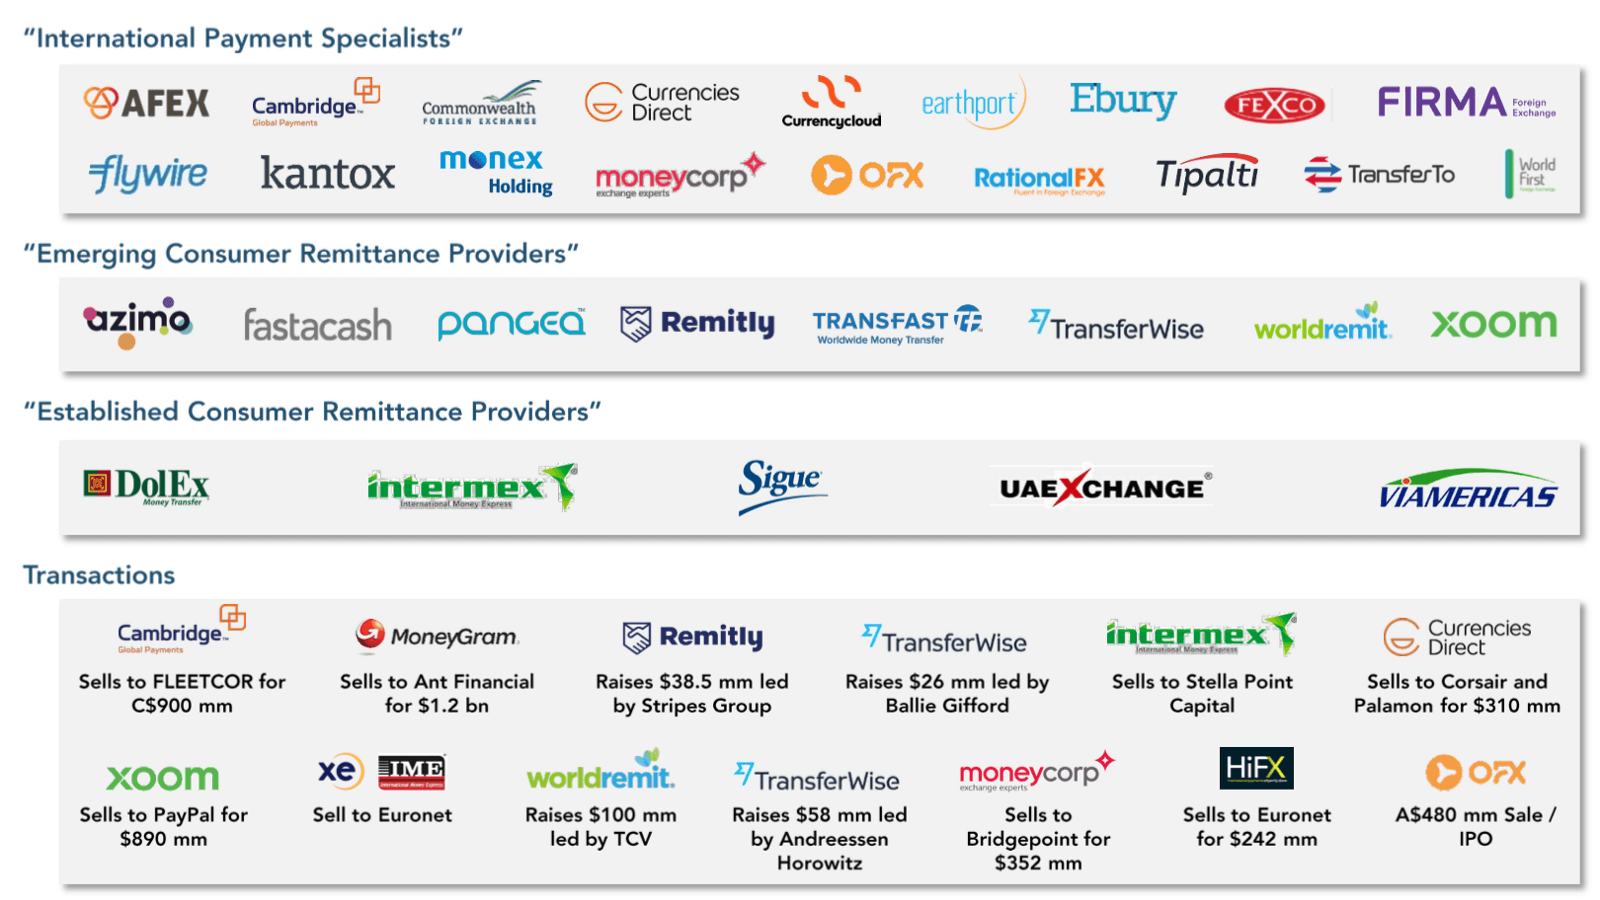 Top 14 Money Transfer Companies and Ripple's Connection